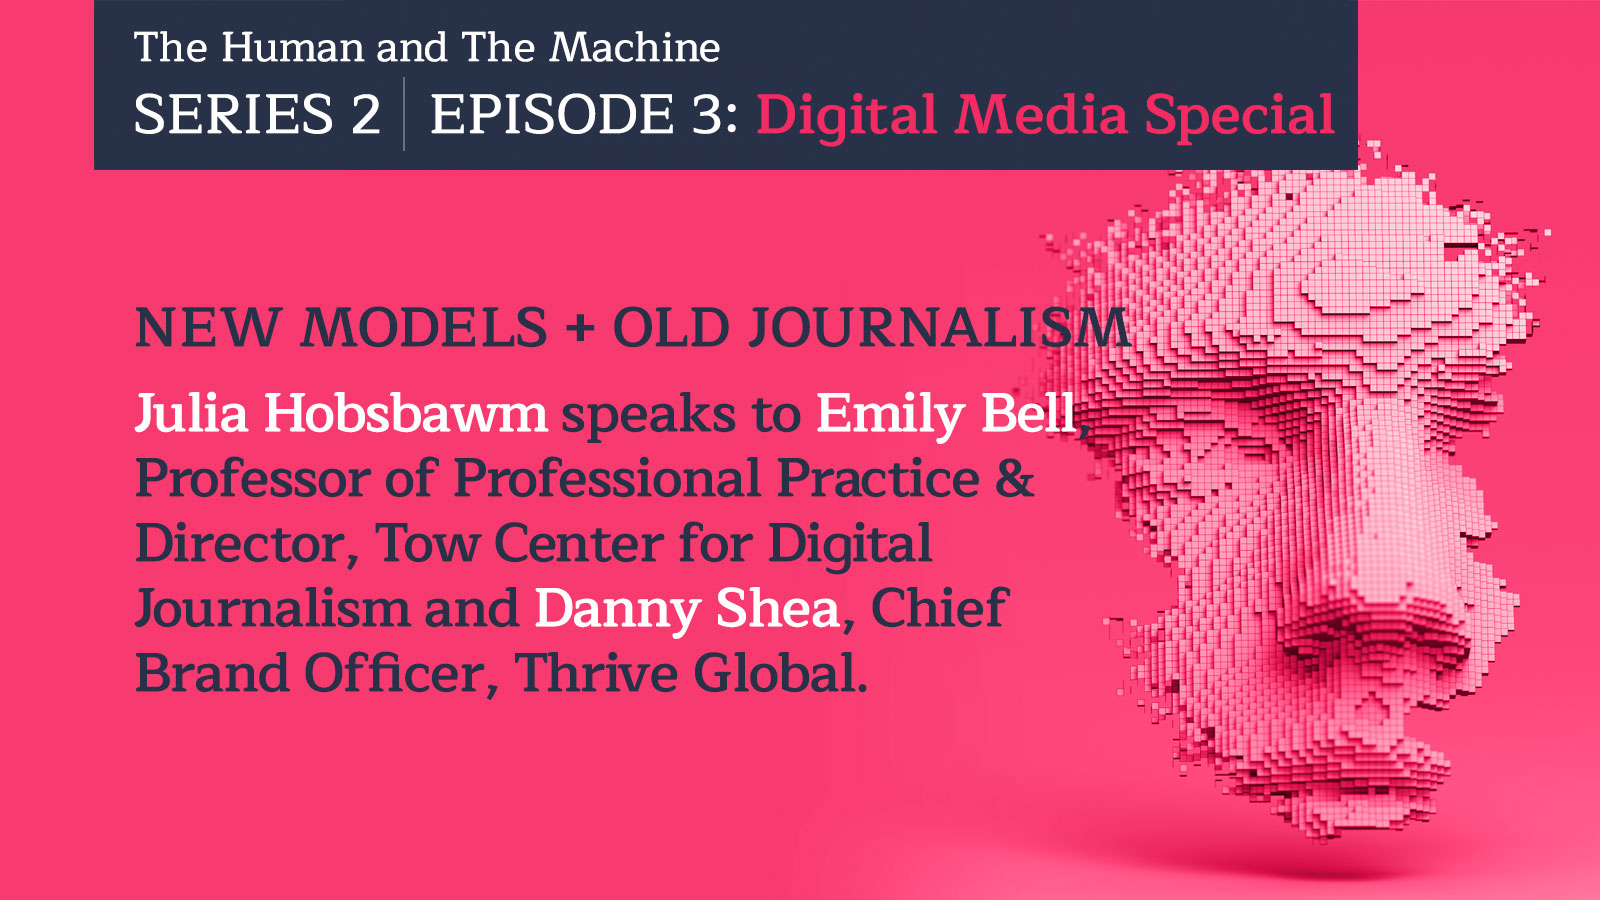 Digital Media Special: New Models + Old Journalism